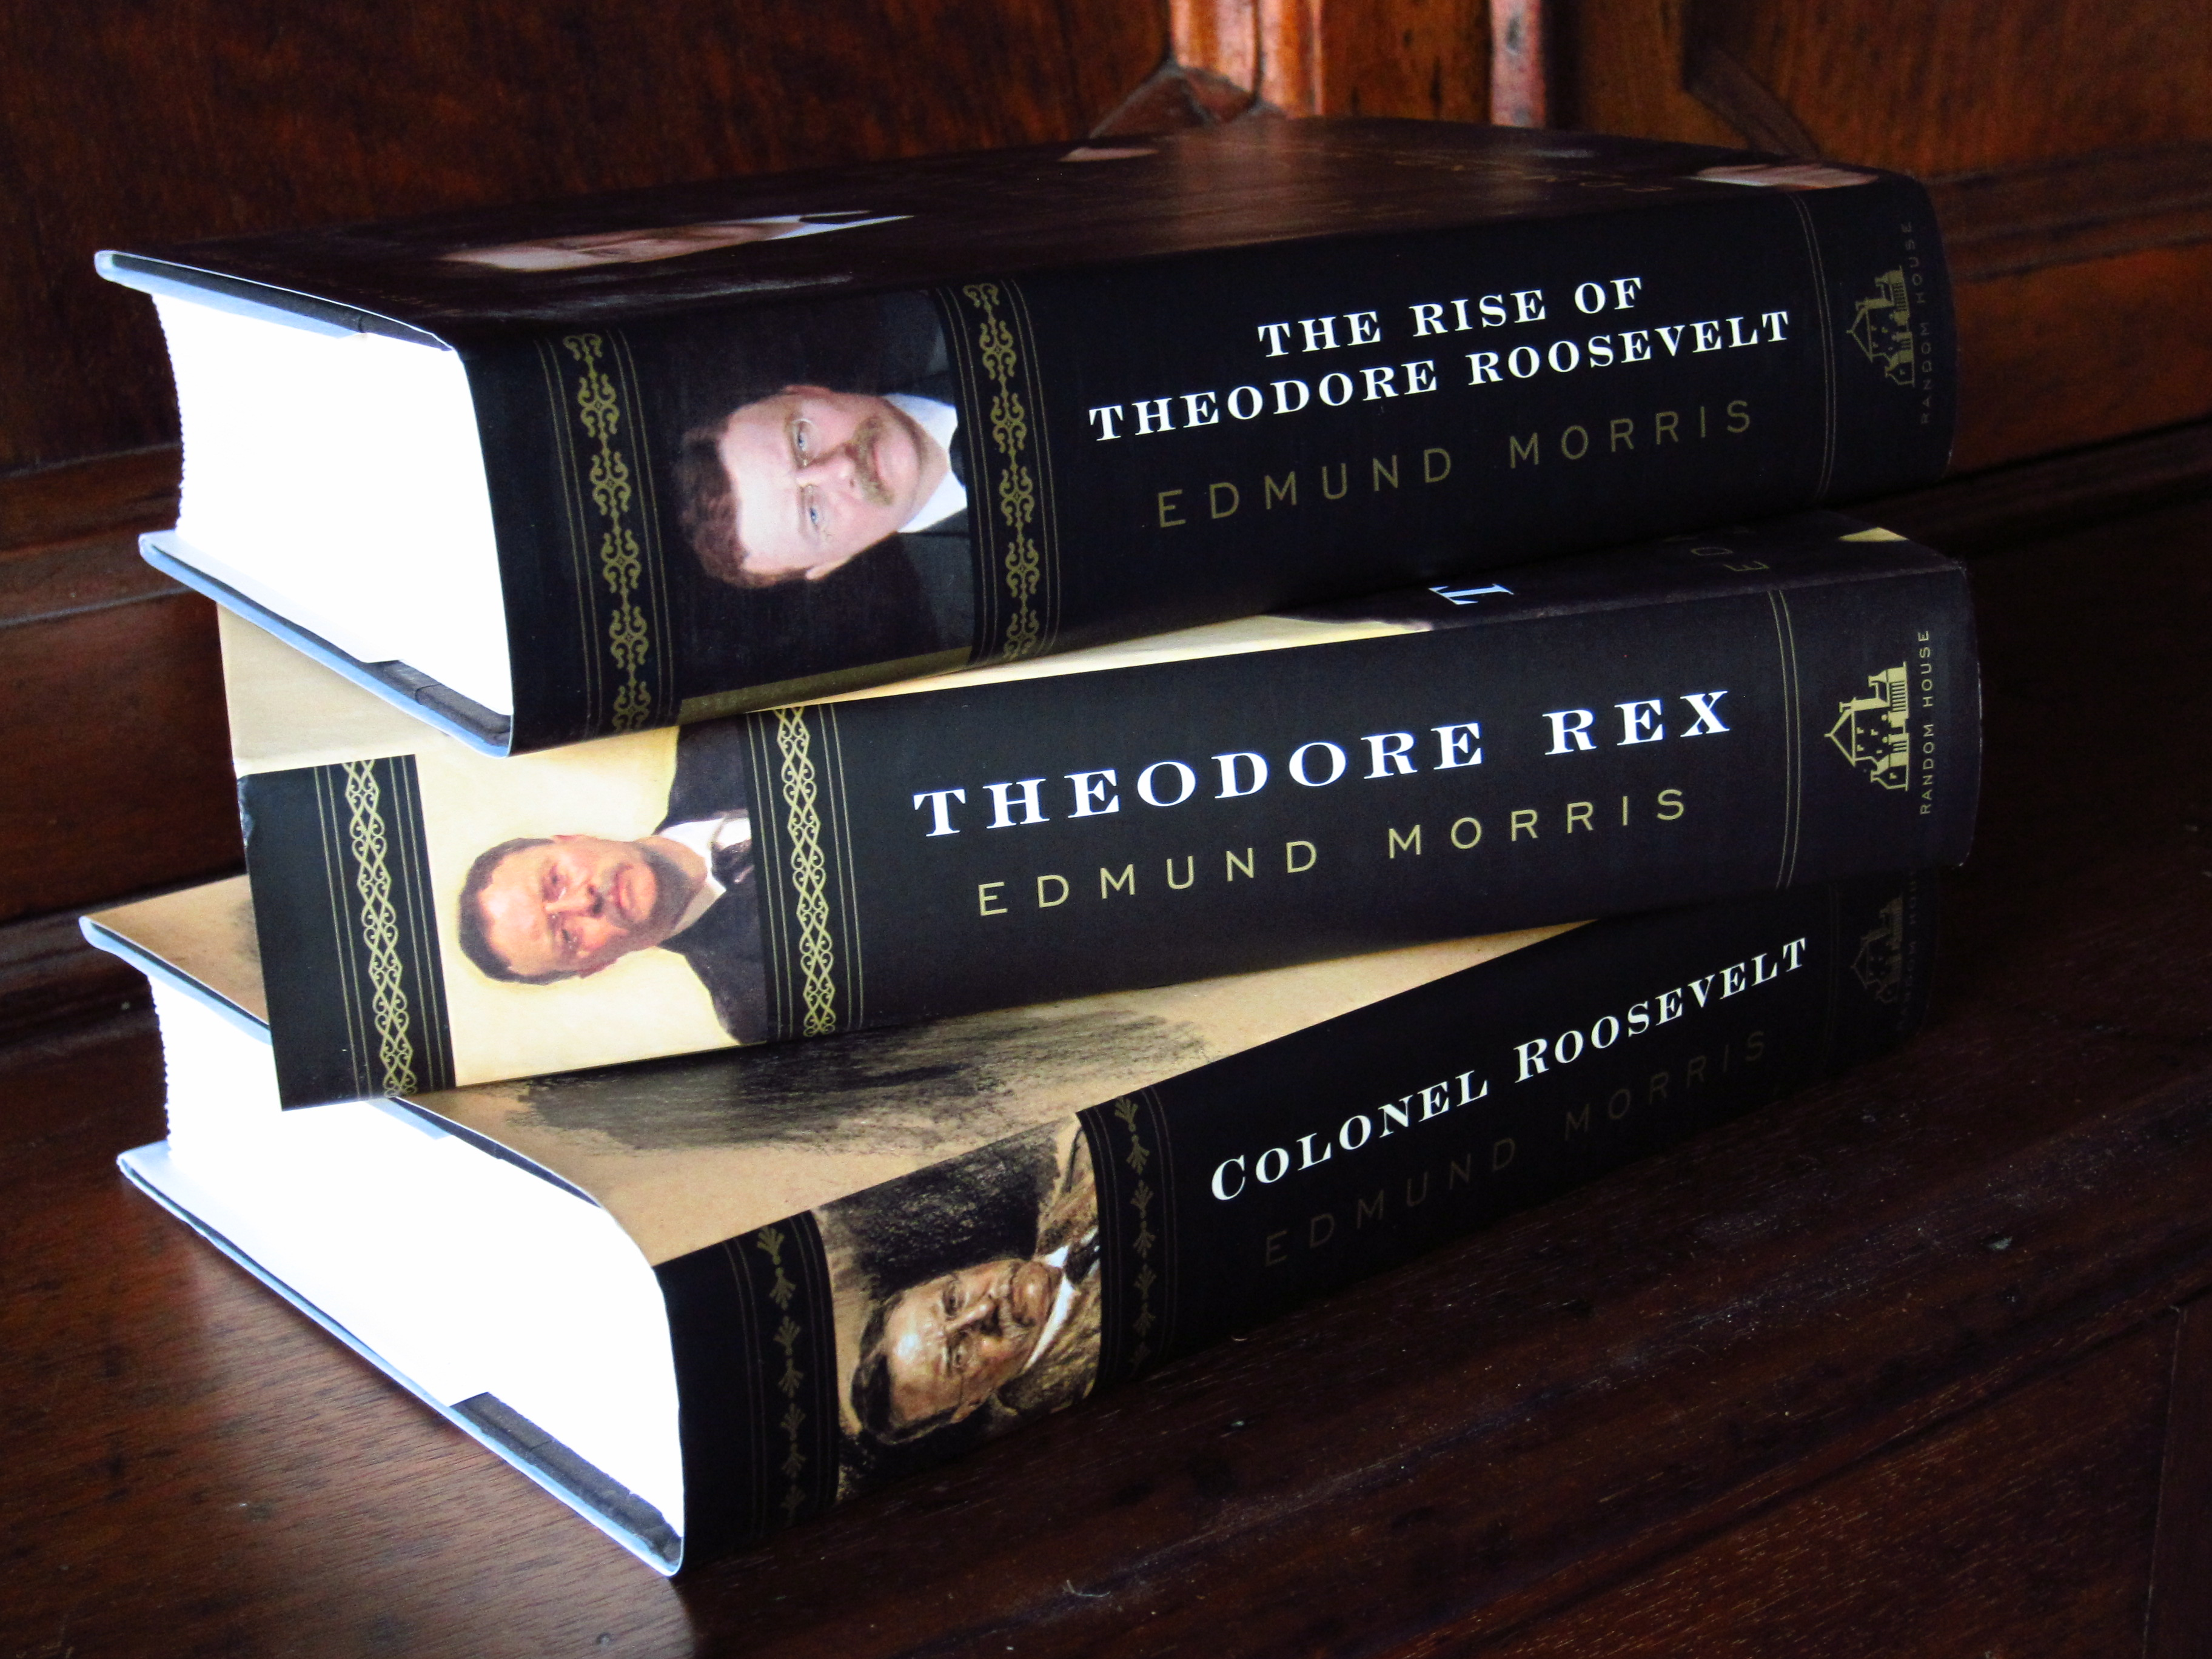 Biography of Theodore Roosevelt, by Edmund Morris